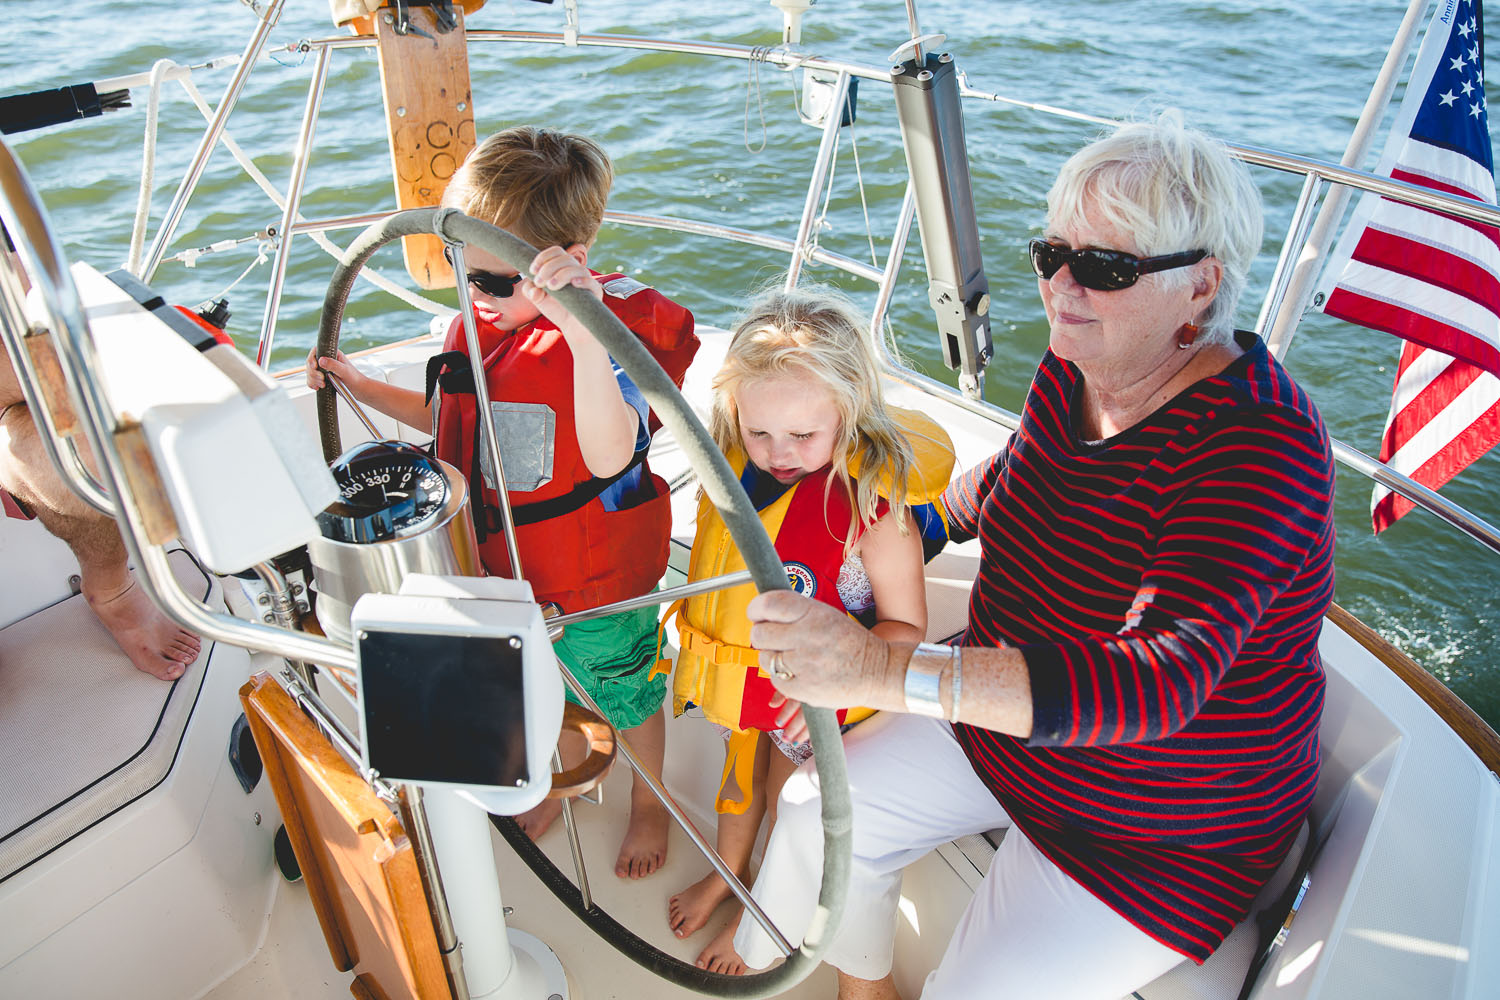 family-portraits-on-sailboat.jpg